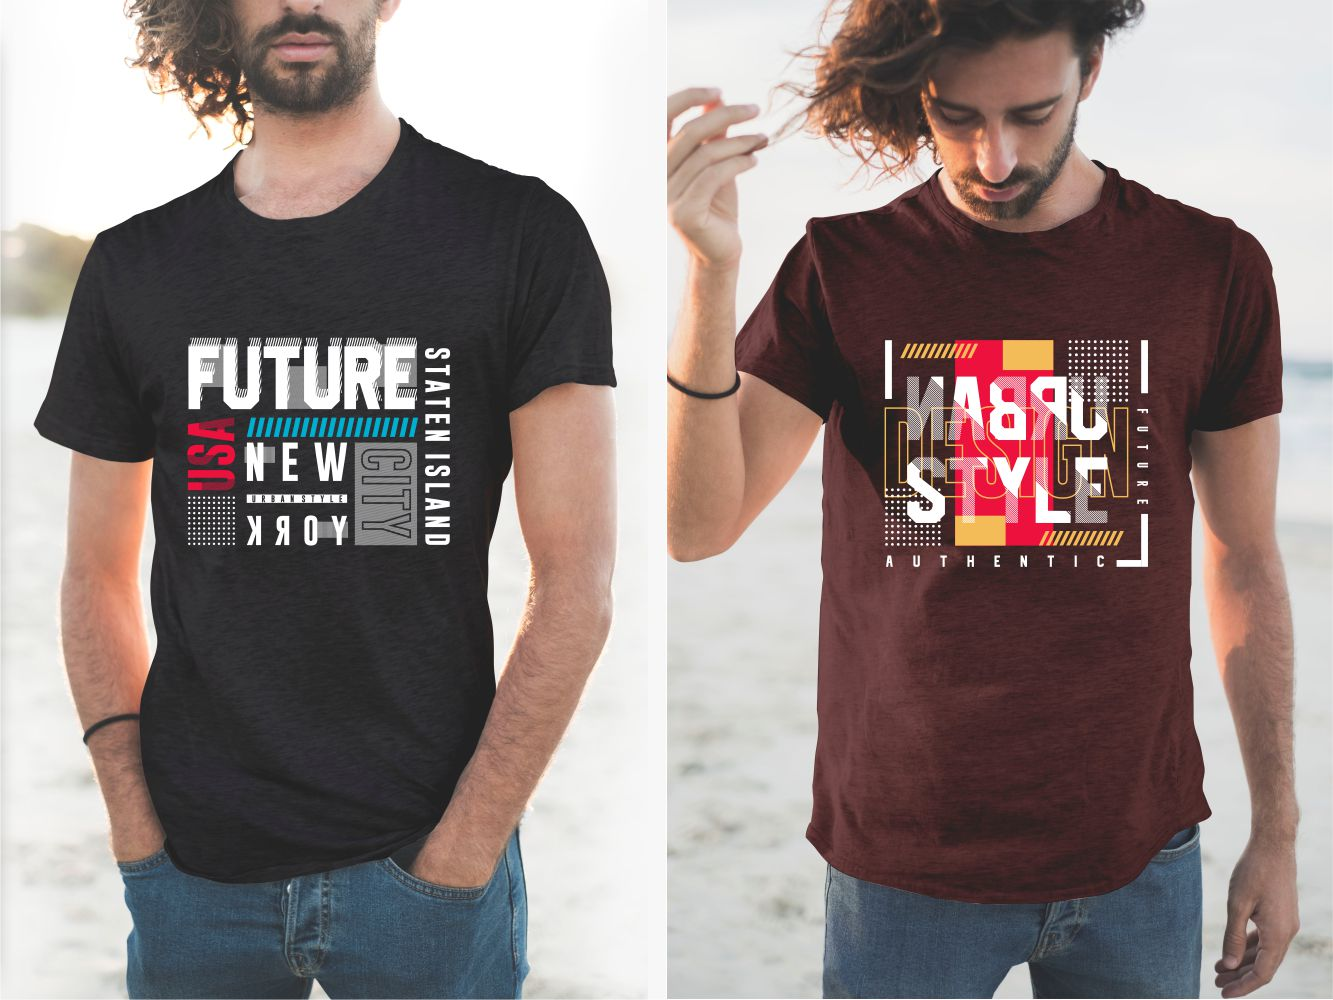 Black and burgundy T-shirts with geometric patterns and futuristic designs.